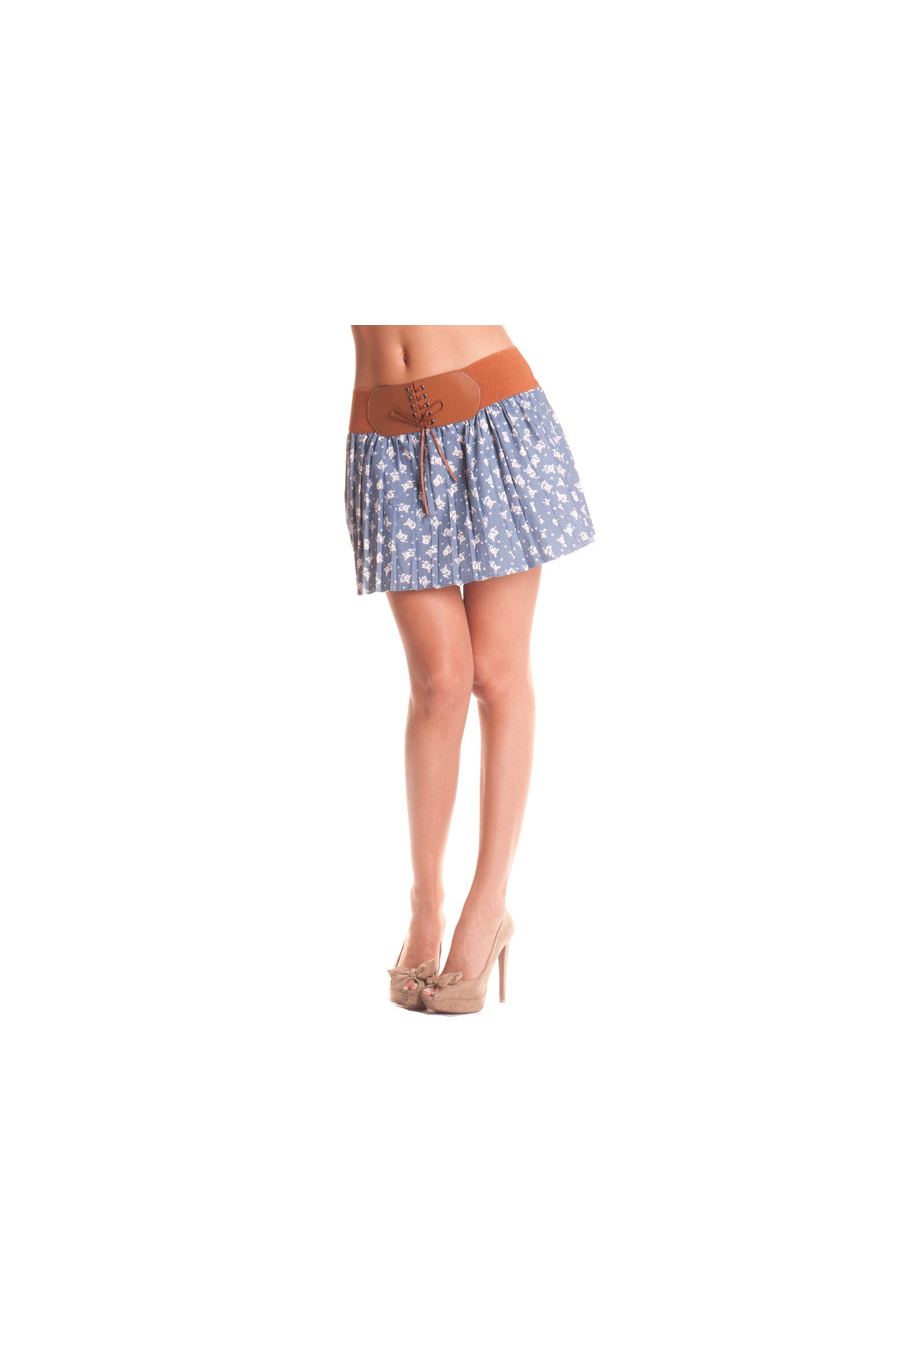 Short pleated skirt with integrated belt. Cheap women fashion